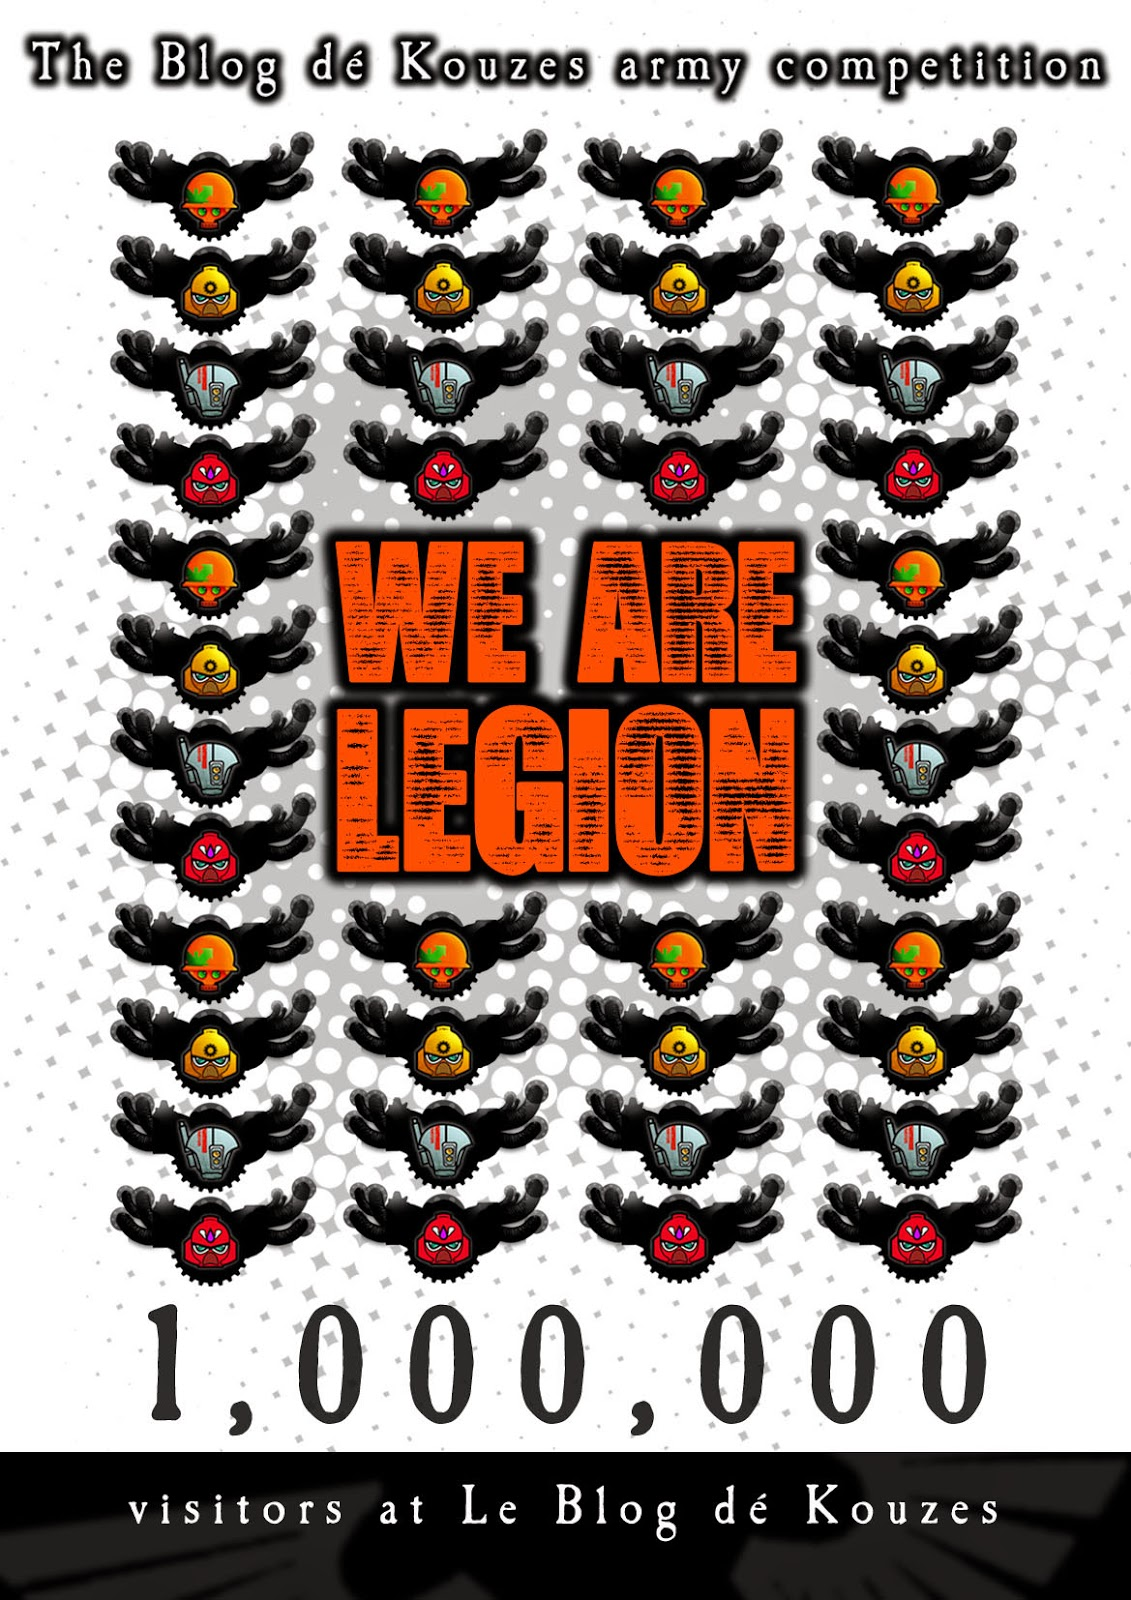 http://leskouzes.blogspot.co.uk/2014/12/we-are-legion-results.html